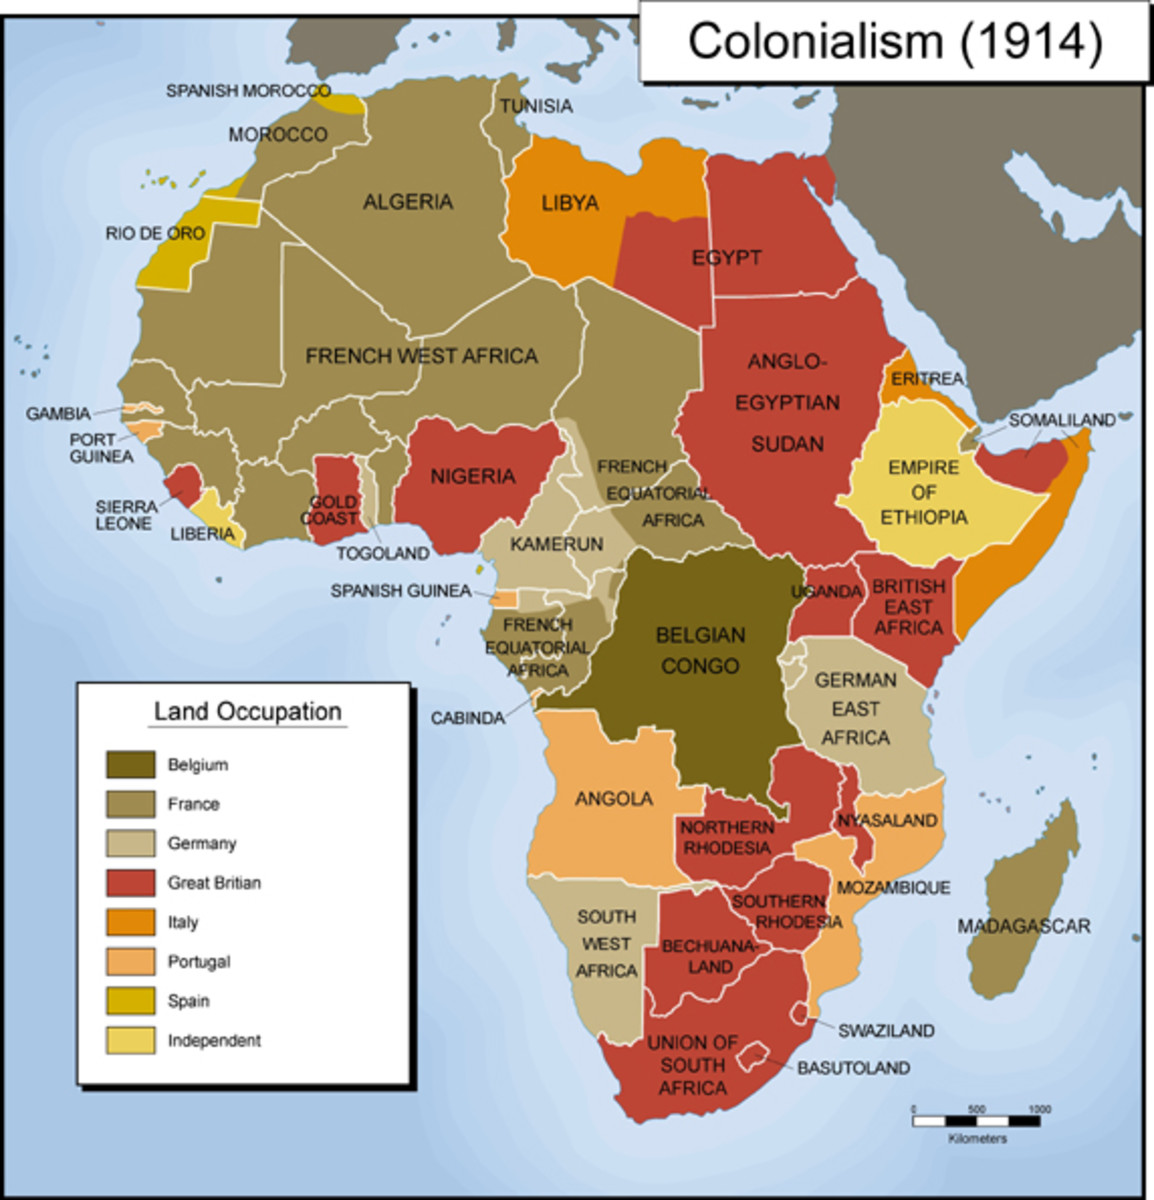 The Colonial Powers had no money, so each colony was charged with raising the revenue necessary to pay for all expenses, including  the colonial army and police force.